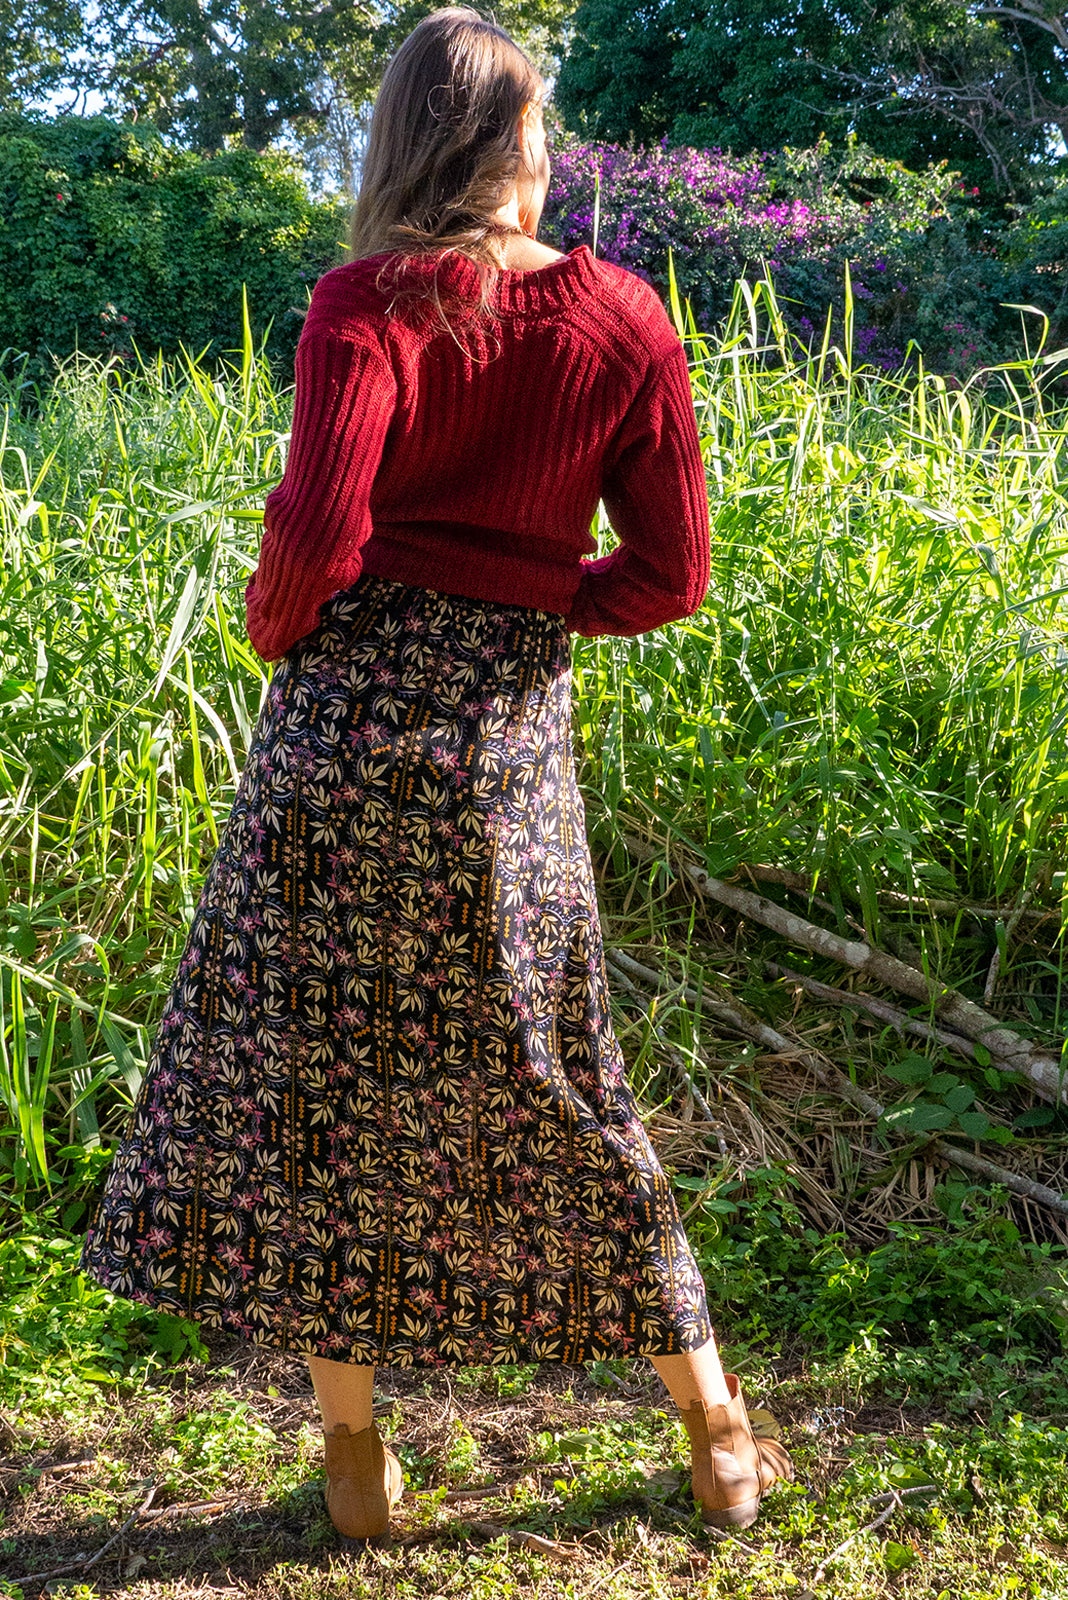 Cosmos Raven Rust Maxi Skirt is made from 100% viscose. Functional button down front in a vintage patterned fabric. Comes with deep pockets. Flattering flowy skirt, very soft and comfortable.